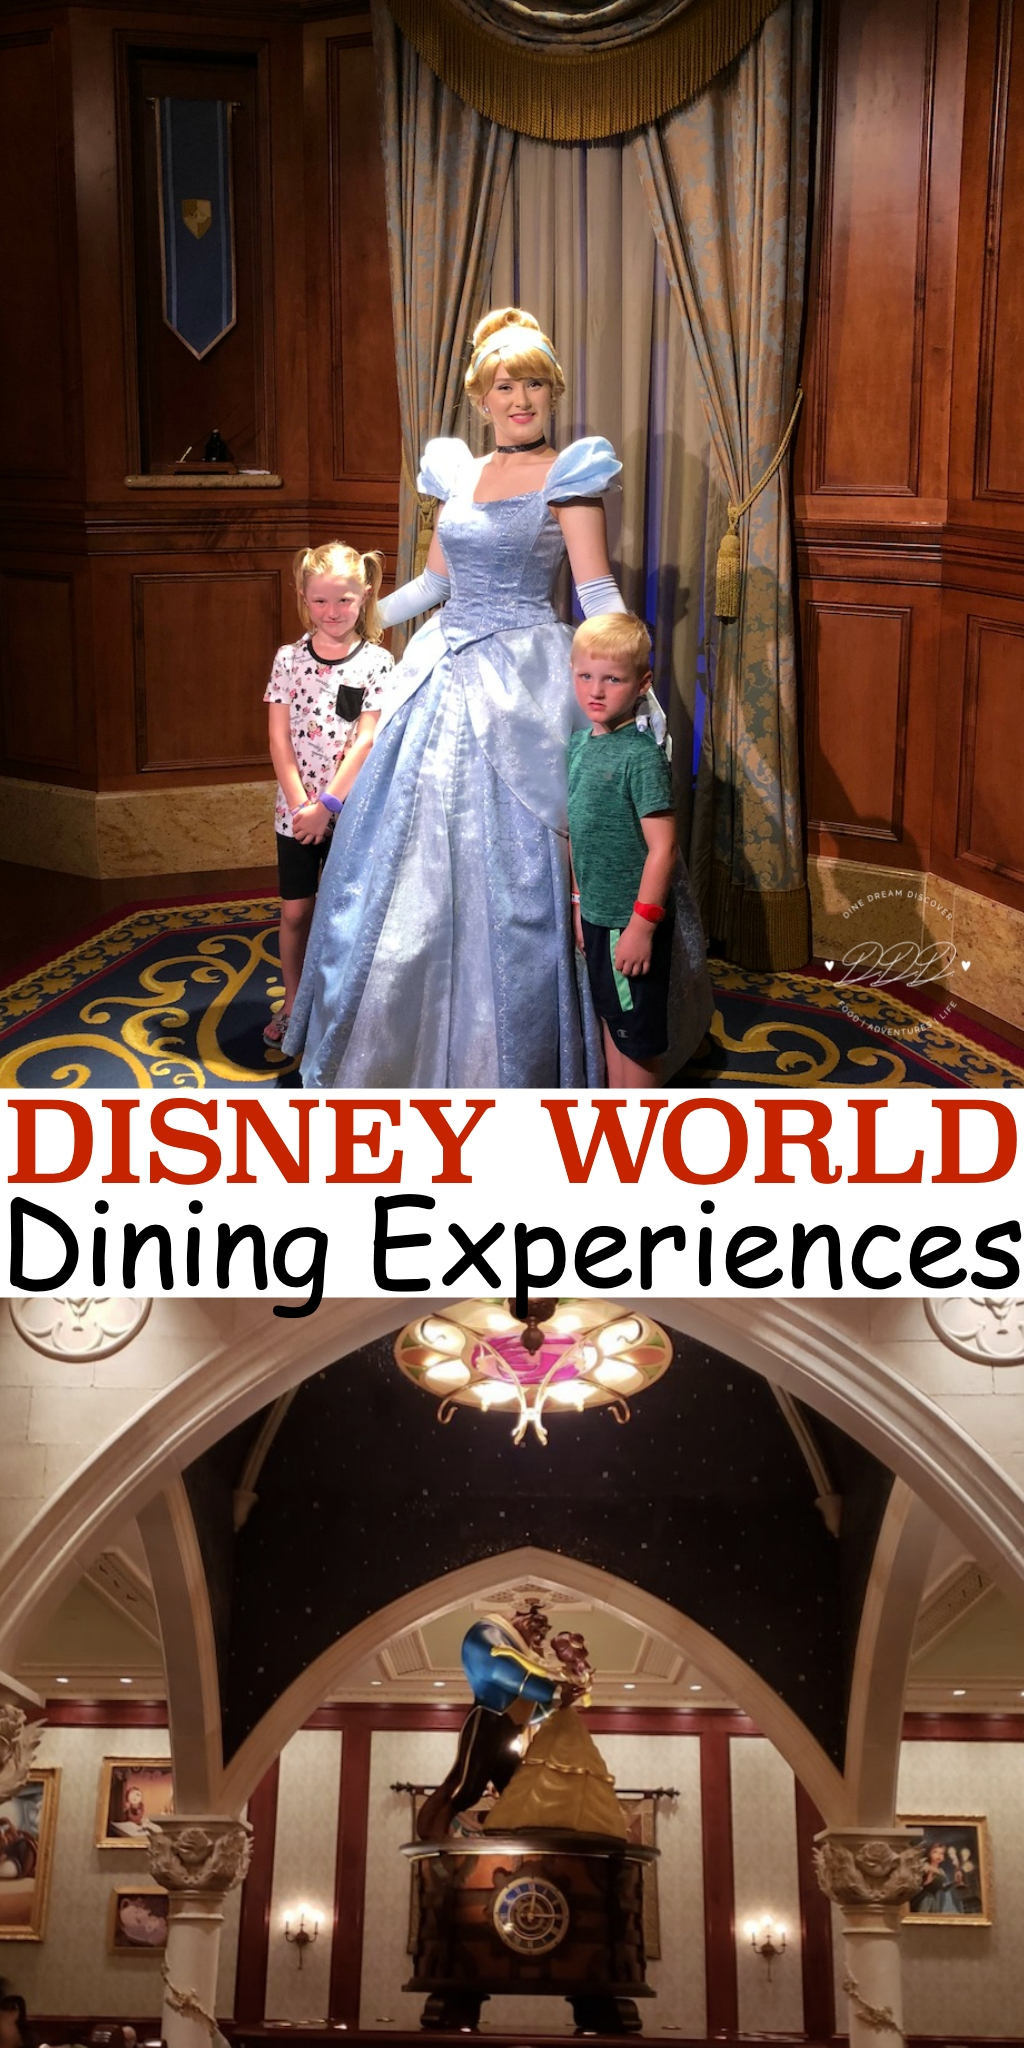 There are so many dining experiences at Disney World Parks whether it is a quick service dining trip, formal sit down dining, or even Character meals.